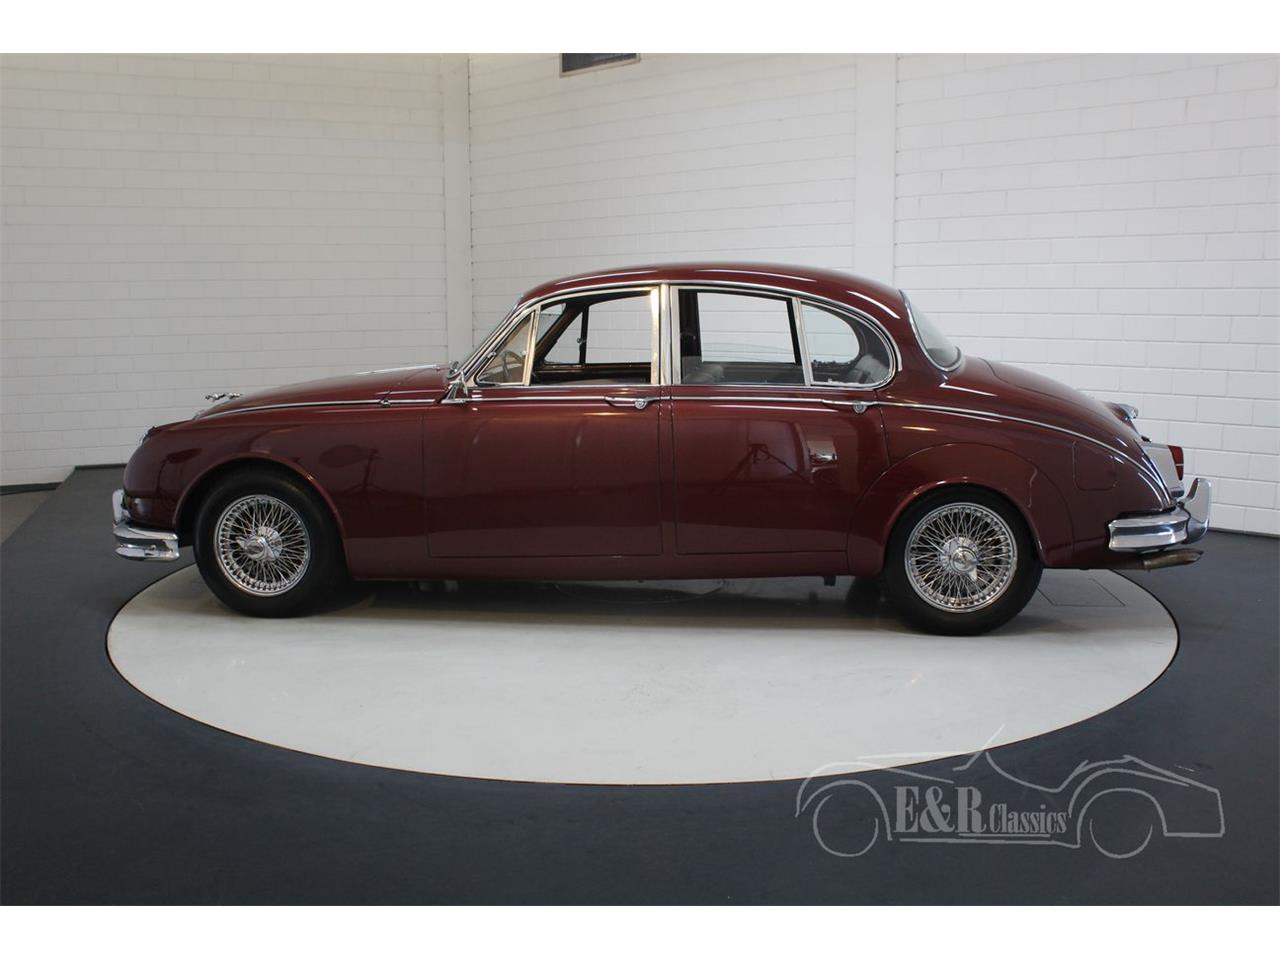 Large Picture of '60 Mark II located in Waalwijk Noord-Brabant - $48,200.00 Offered by E & R Classics - QJZJ